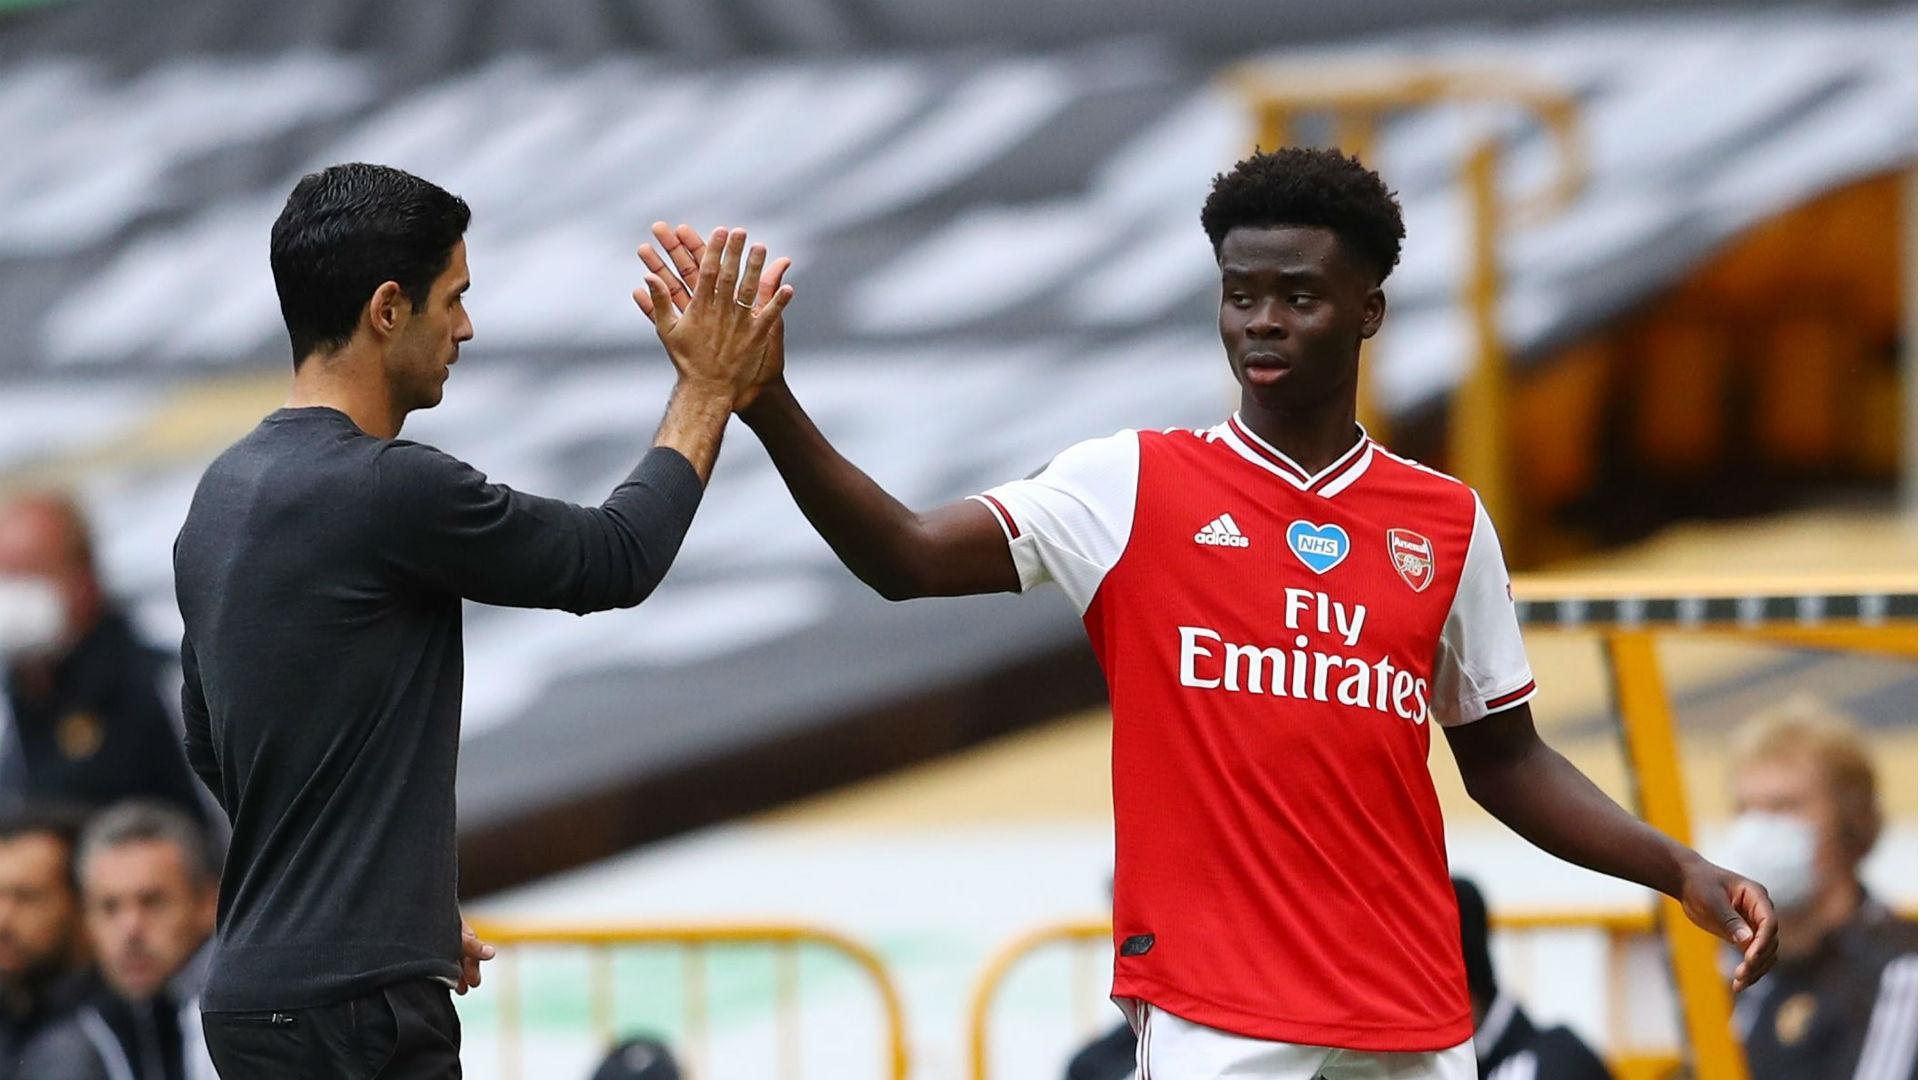 Arteta: More to come from Saka after maiden Premier League strike